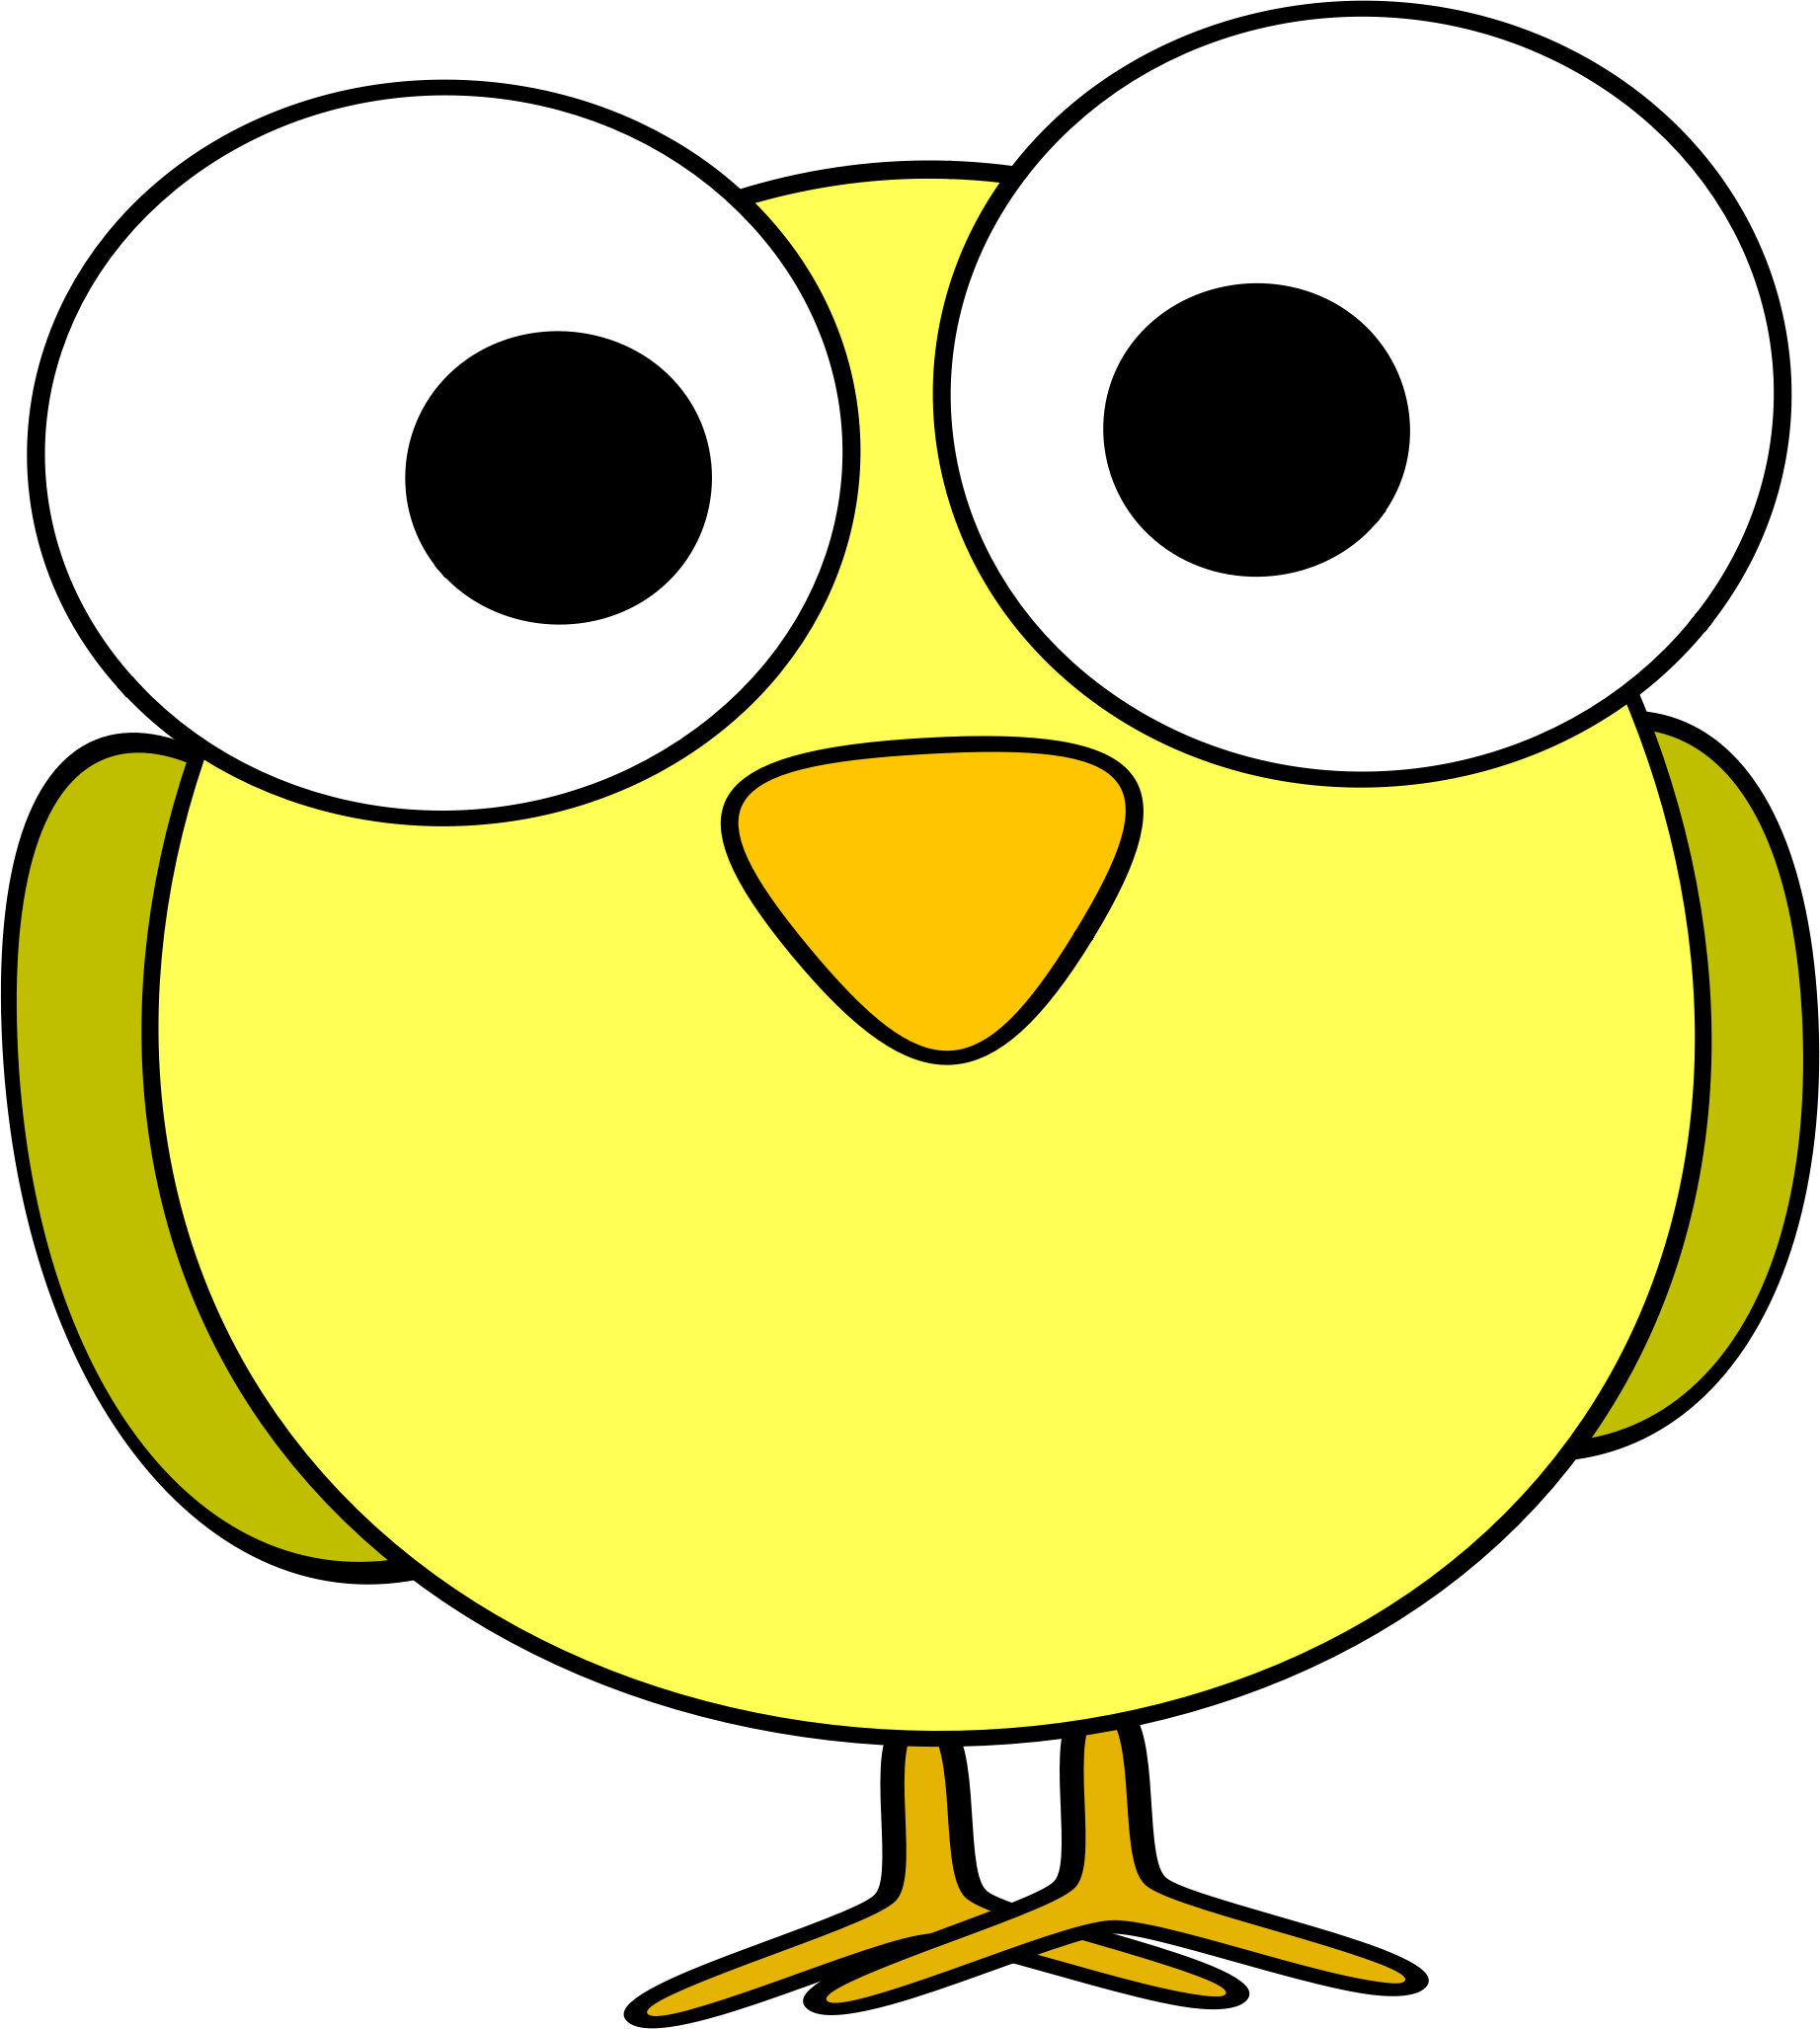 Big eyed pumpkin clipart picture library library A funny-looking yellow cartoon bird with big eyes. #funny #cute ... picture library library